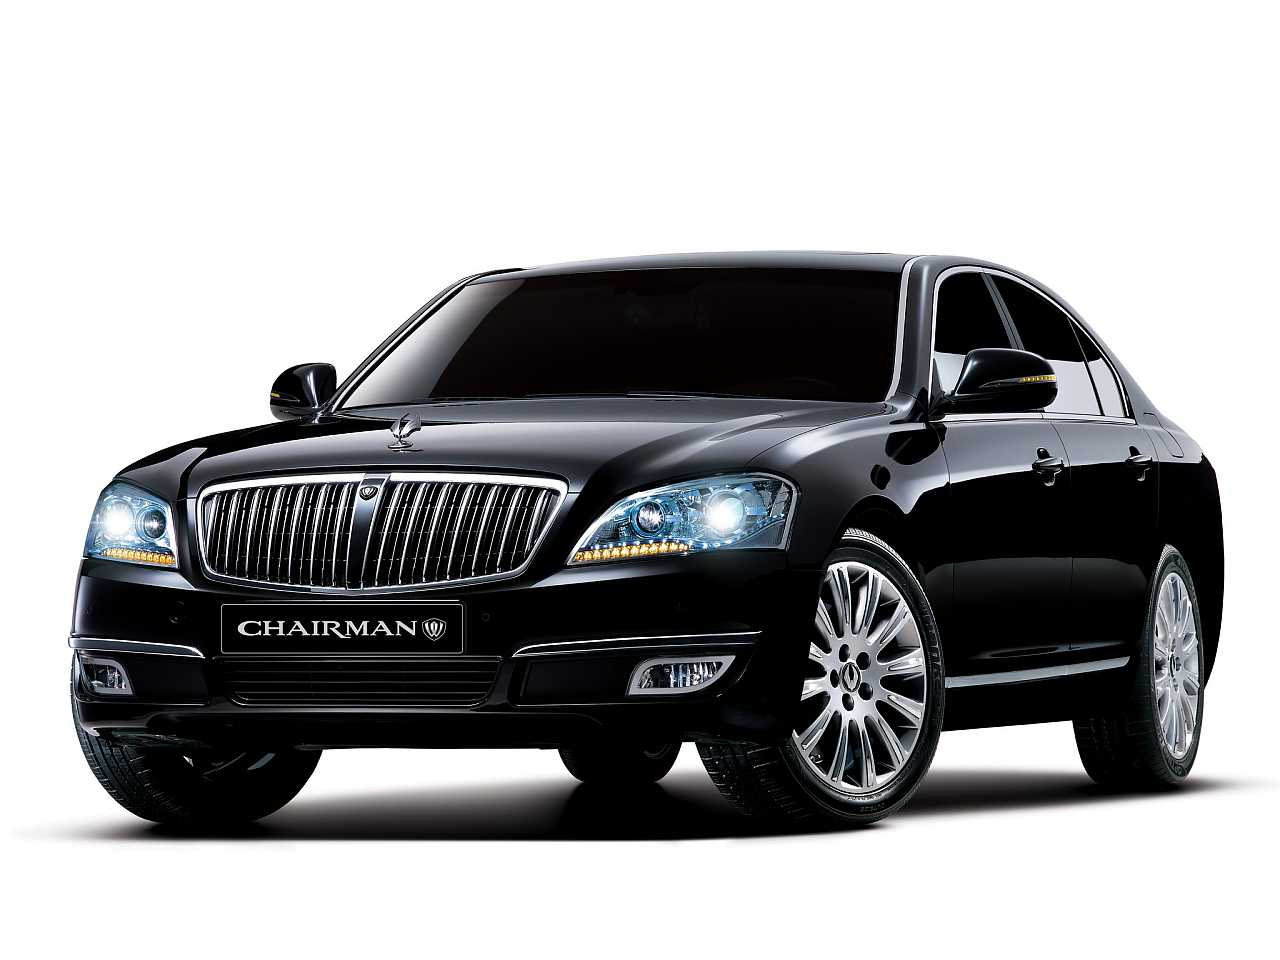 Brands Of Cars >> Cars ssangyong chairman (w124) 2008 - Auto-Database.com